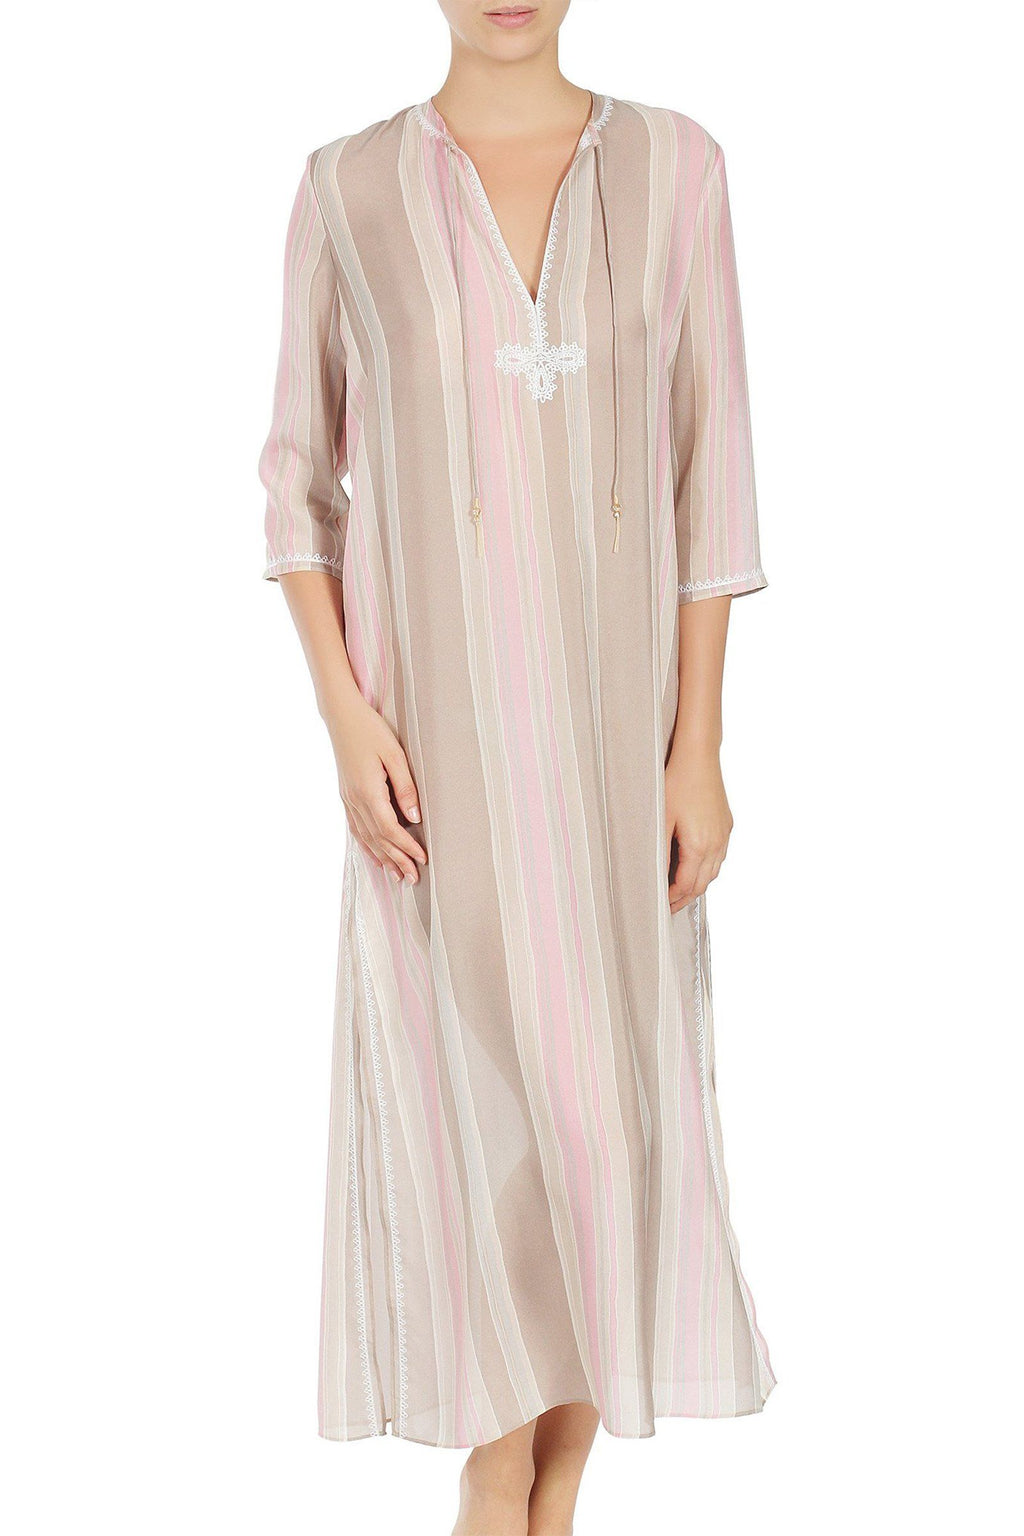 Embroidered Long Silk Chiffon Caftan Tunics Marie France Van Damme